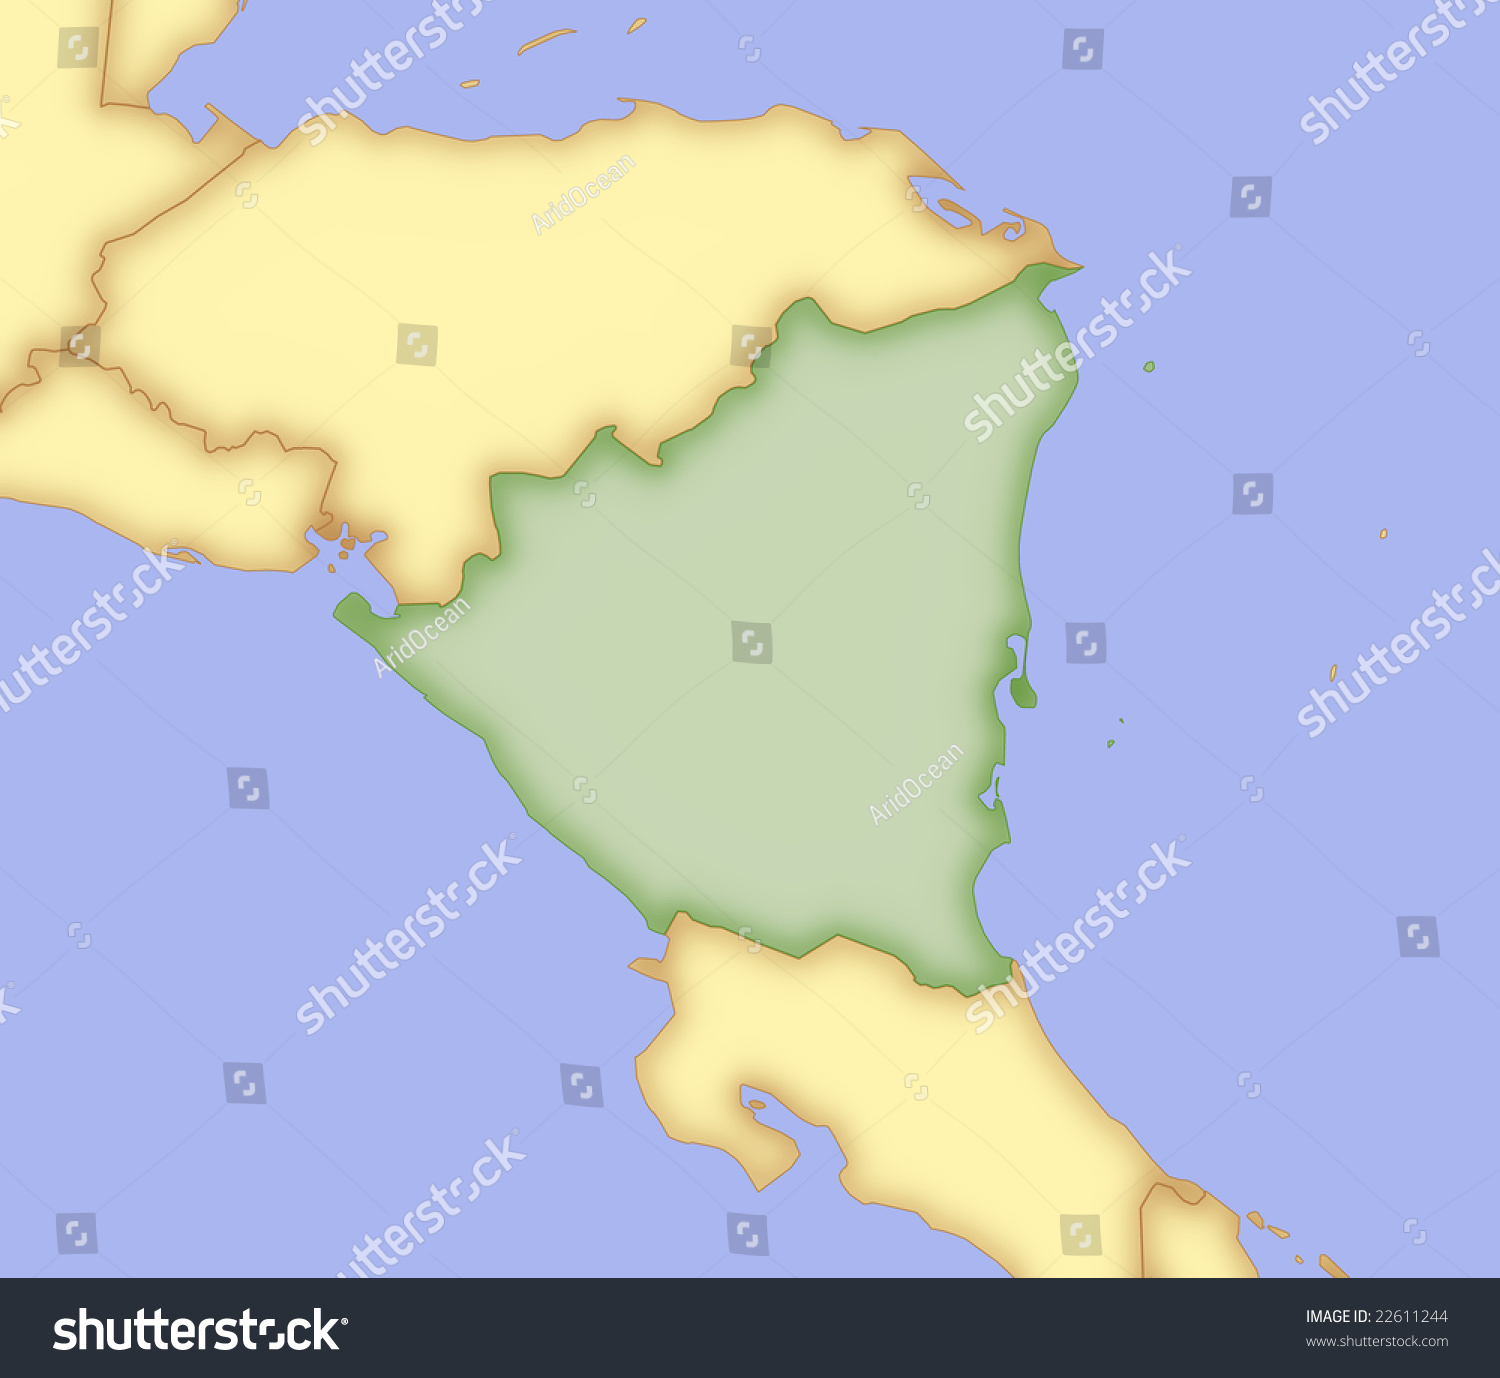 Map nicaragua borders surrounding countries stock illustration map of nicaragua with borders of surrounding countries gumiabroncs Gallery